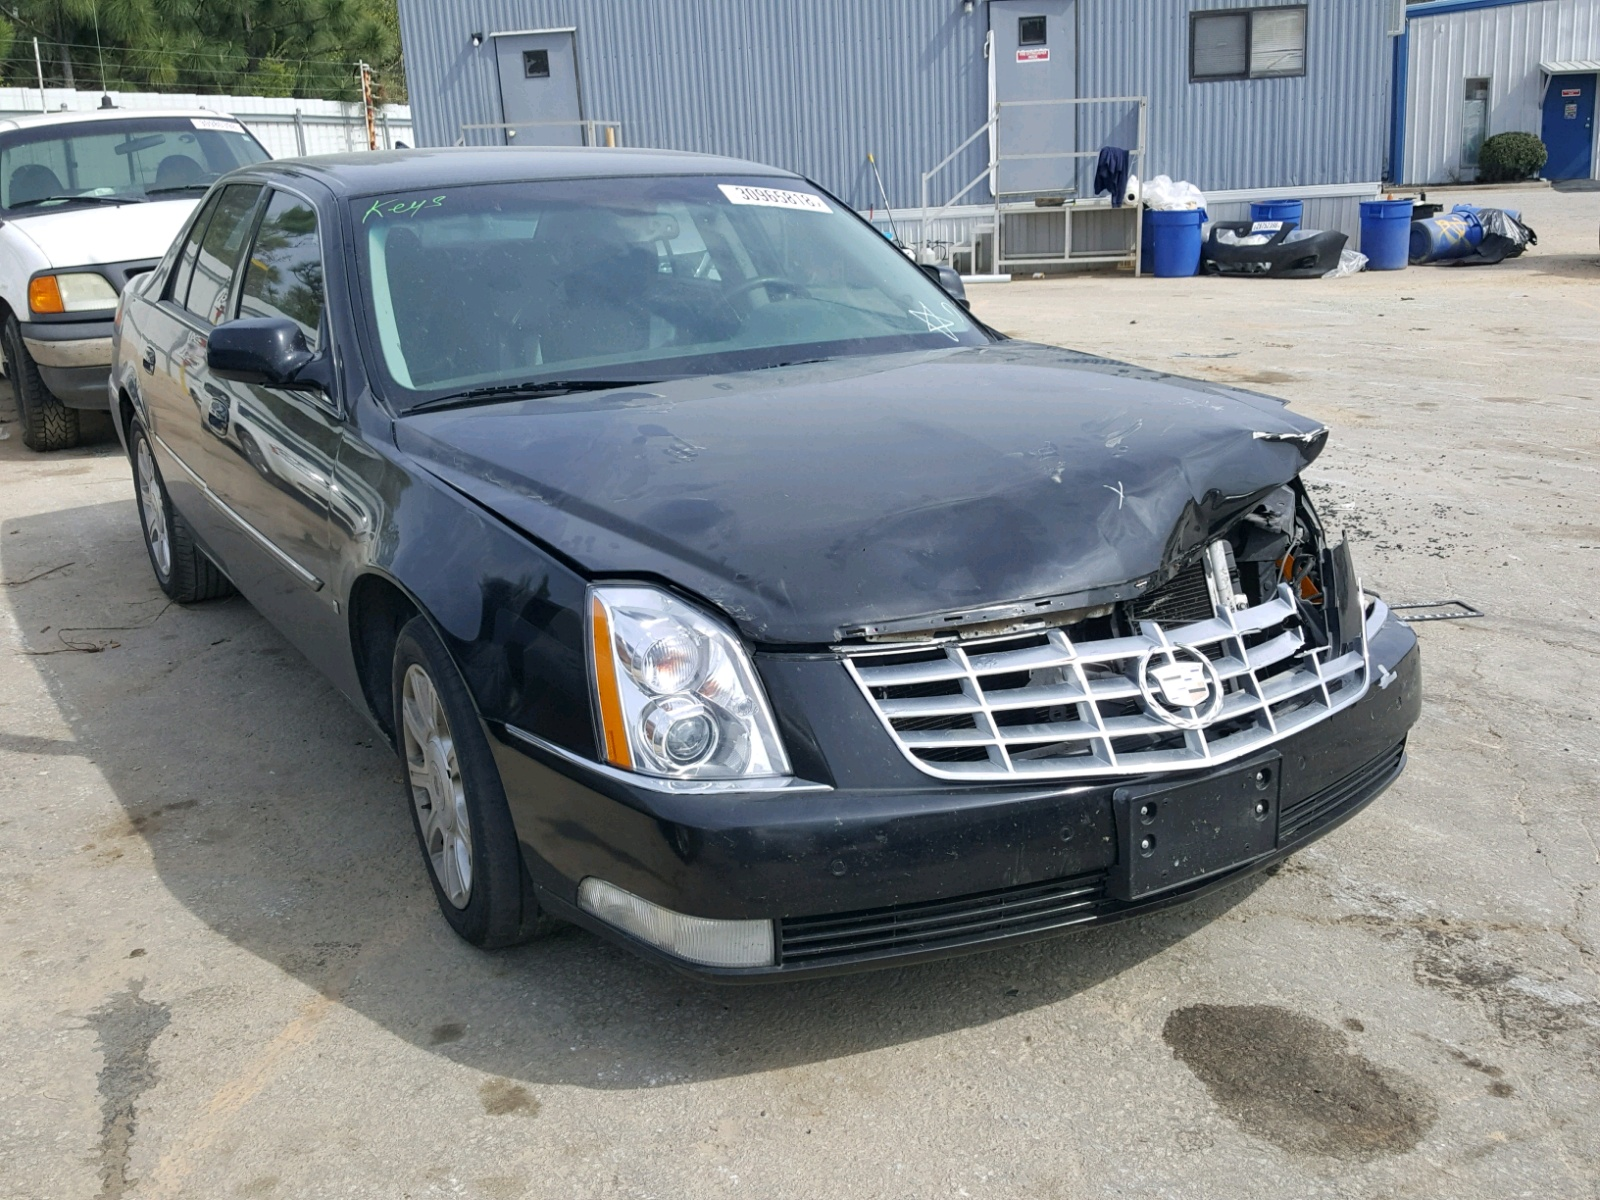 cadillac dts on art guild l deviantart transport the by o